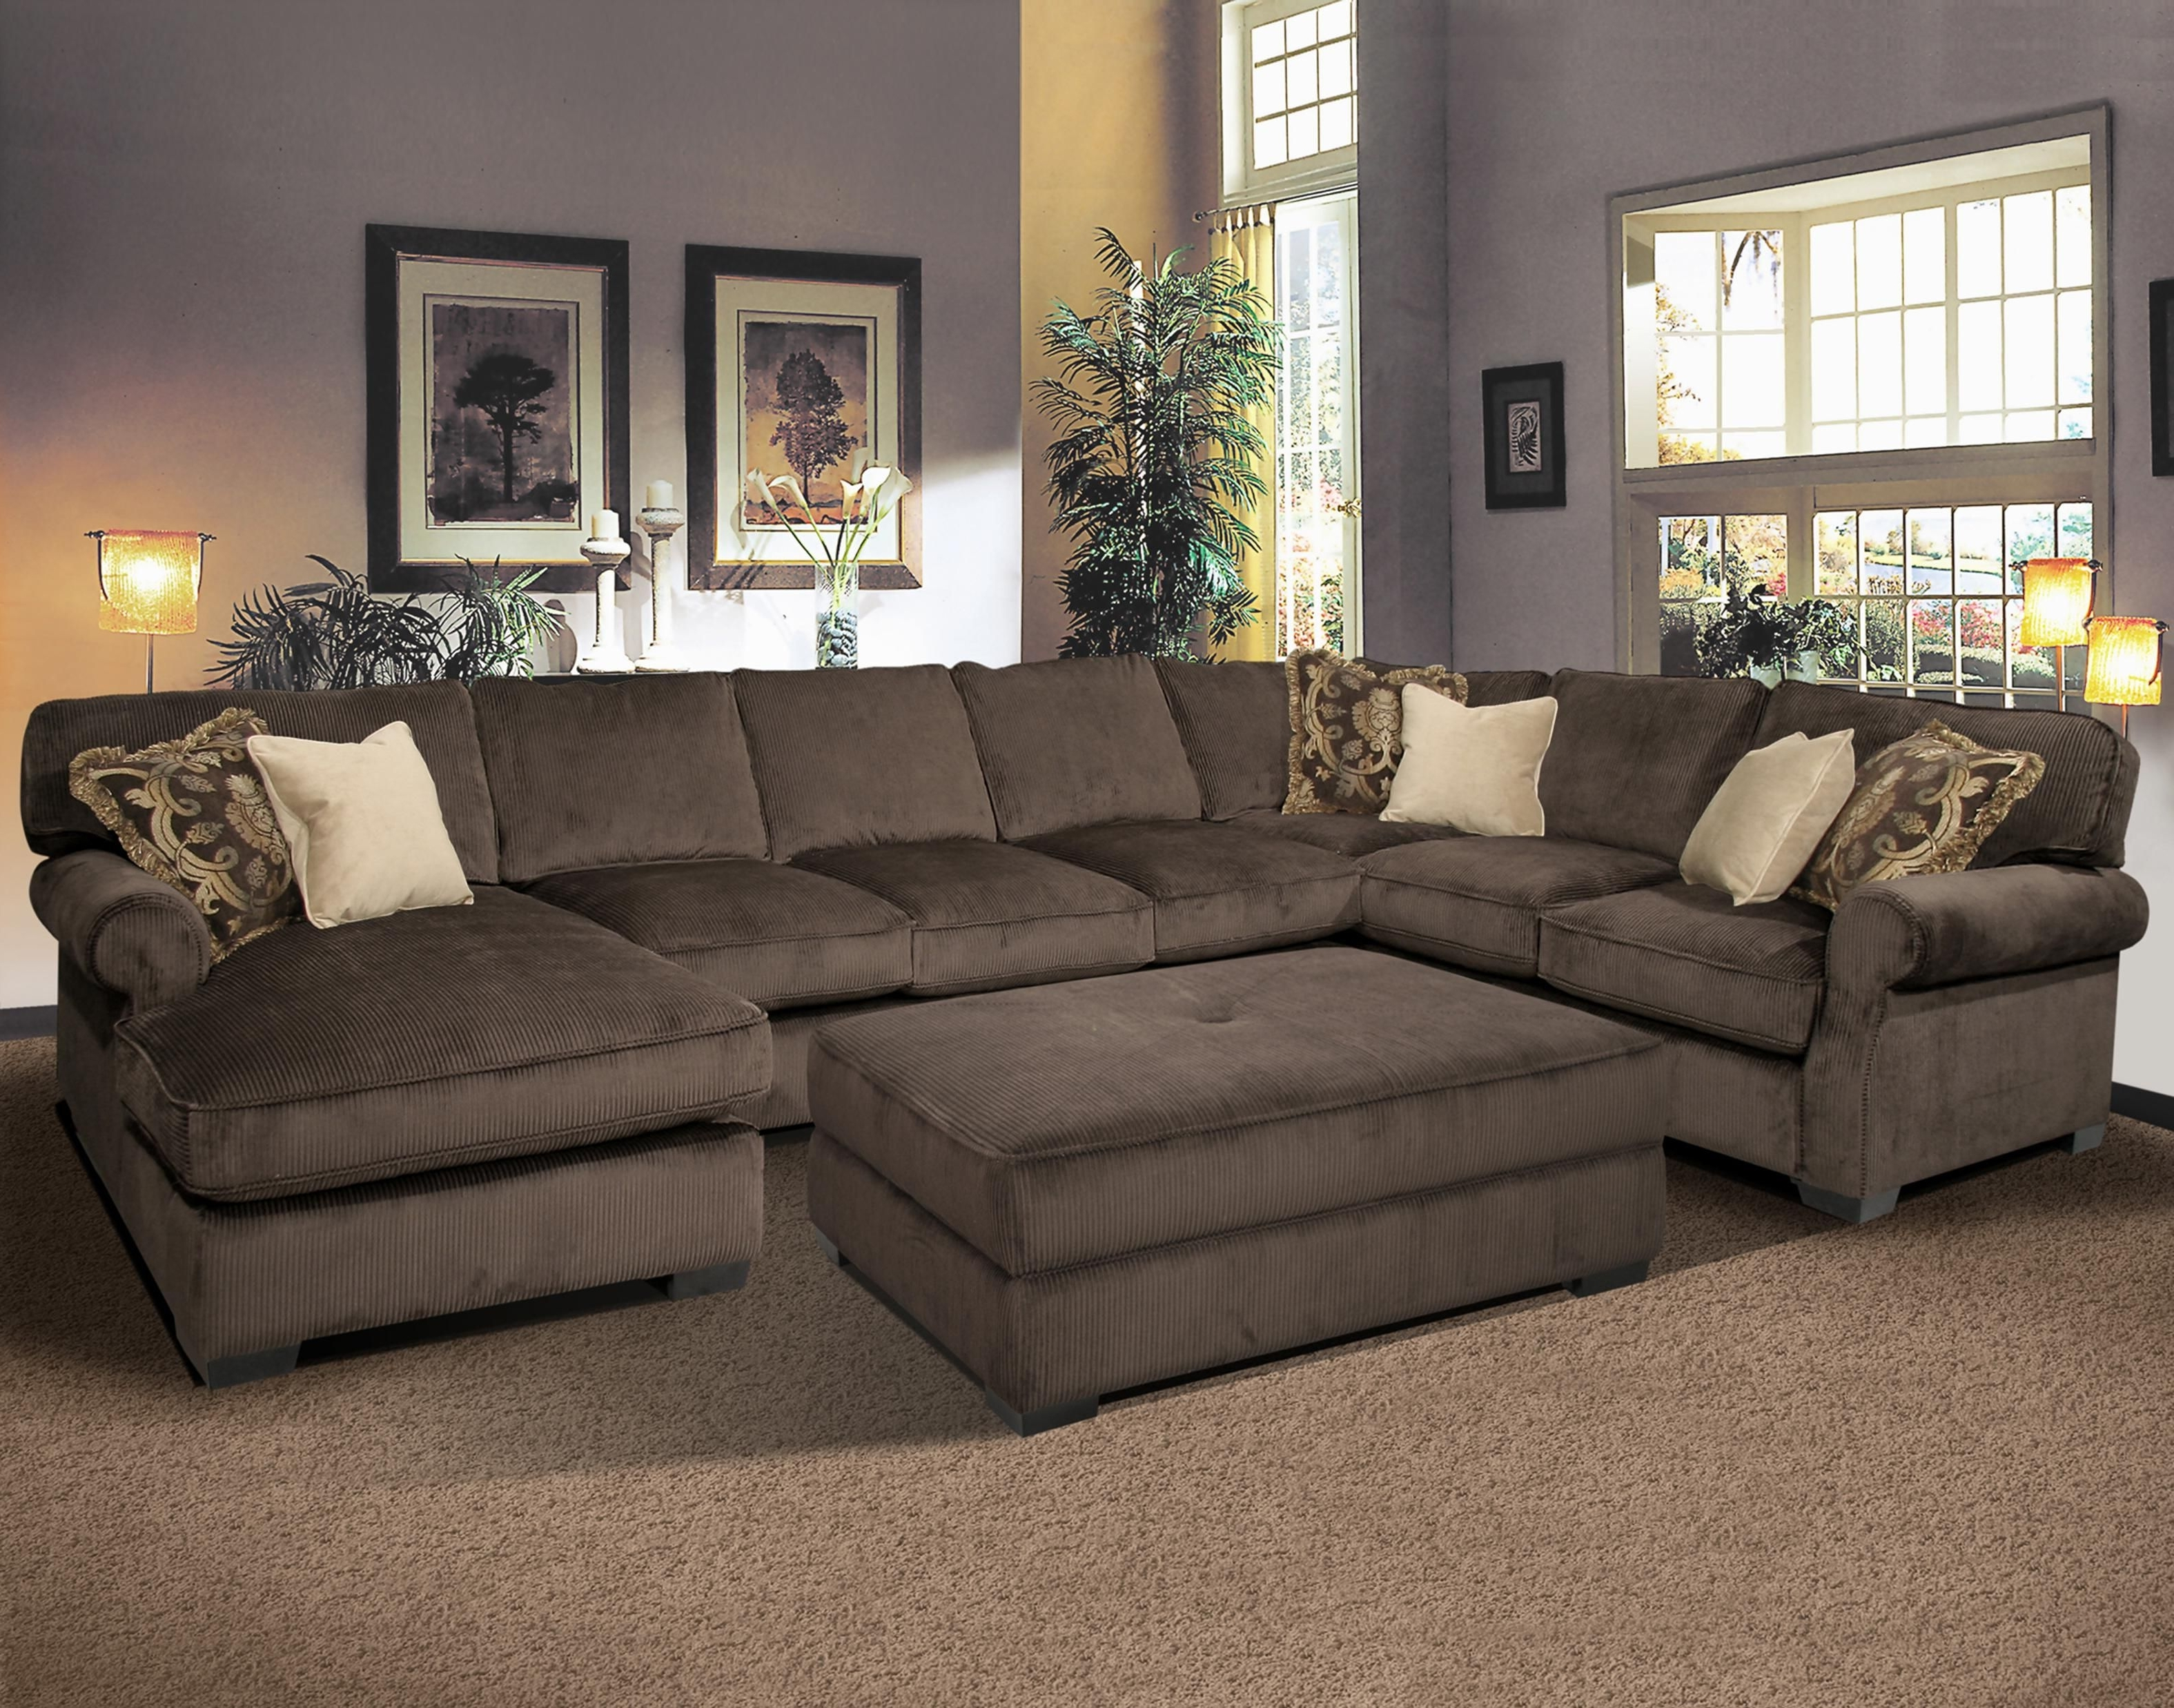 Current Lubbock Sectional Sofas With Big And Comfy Grand Island Large, 7 Seat Sectional Sofa With Right (View 3 of 15)